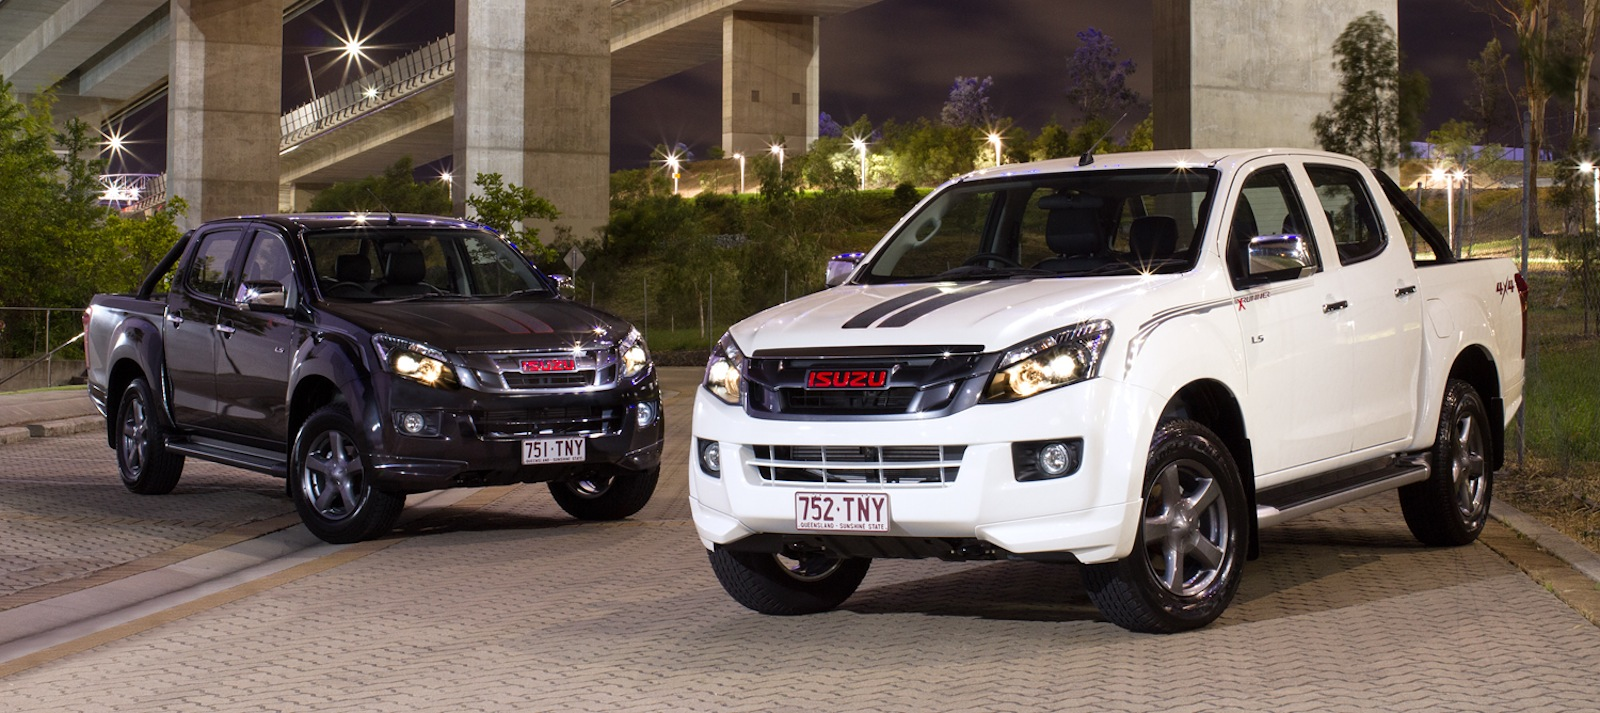 Isuzu D-Max X-Runner special edition launched - Photos (1 ...